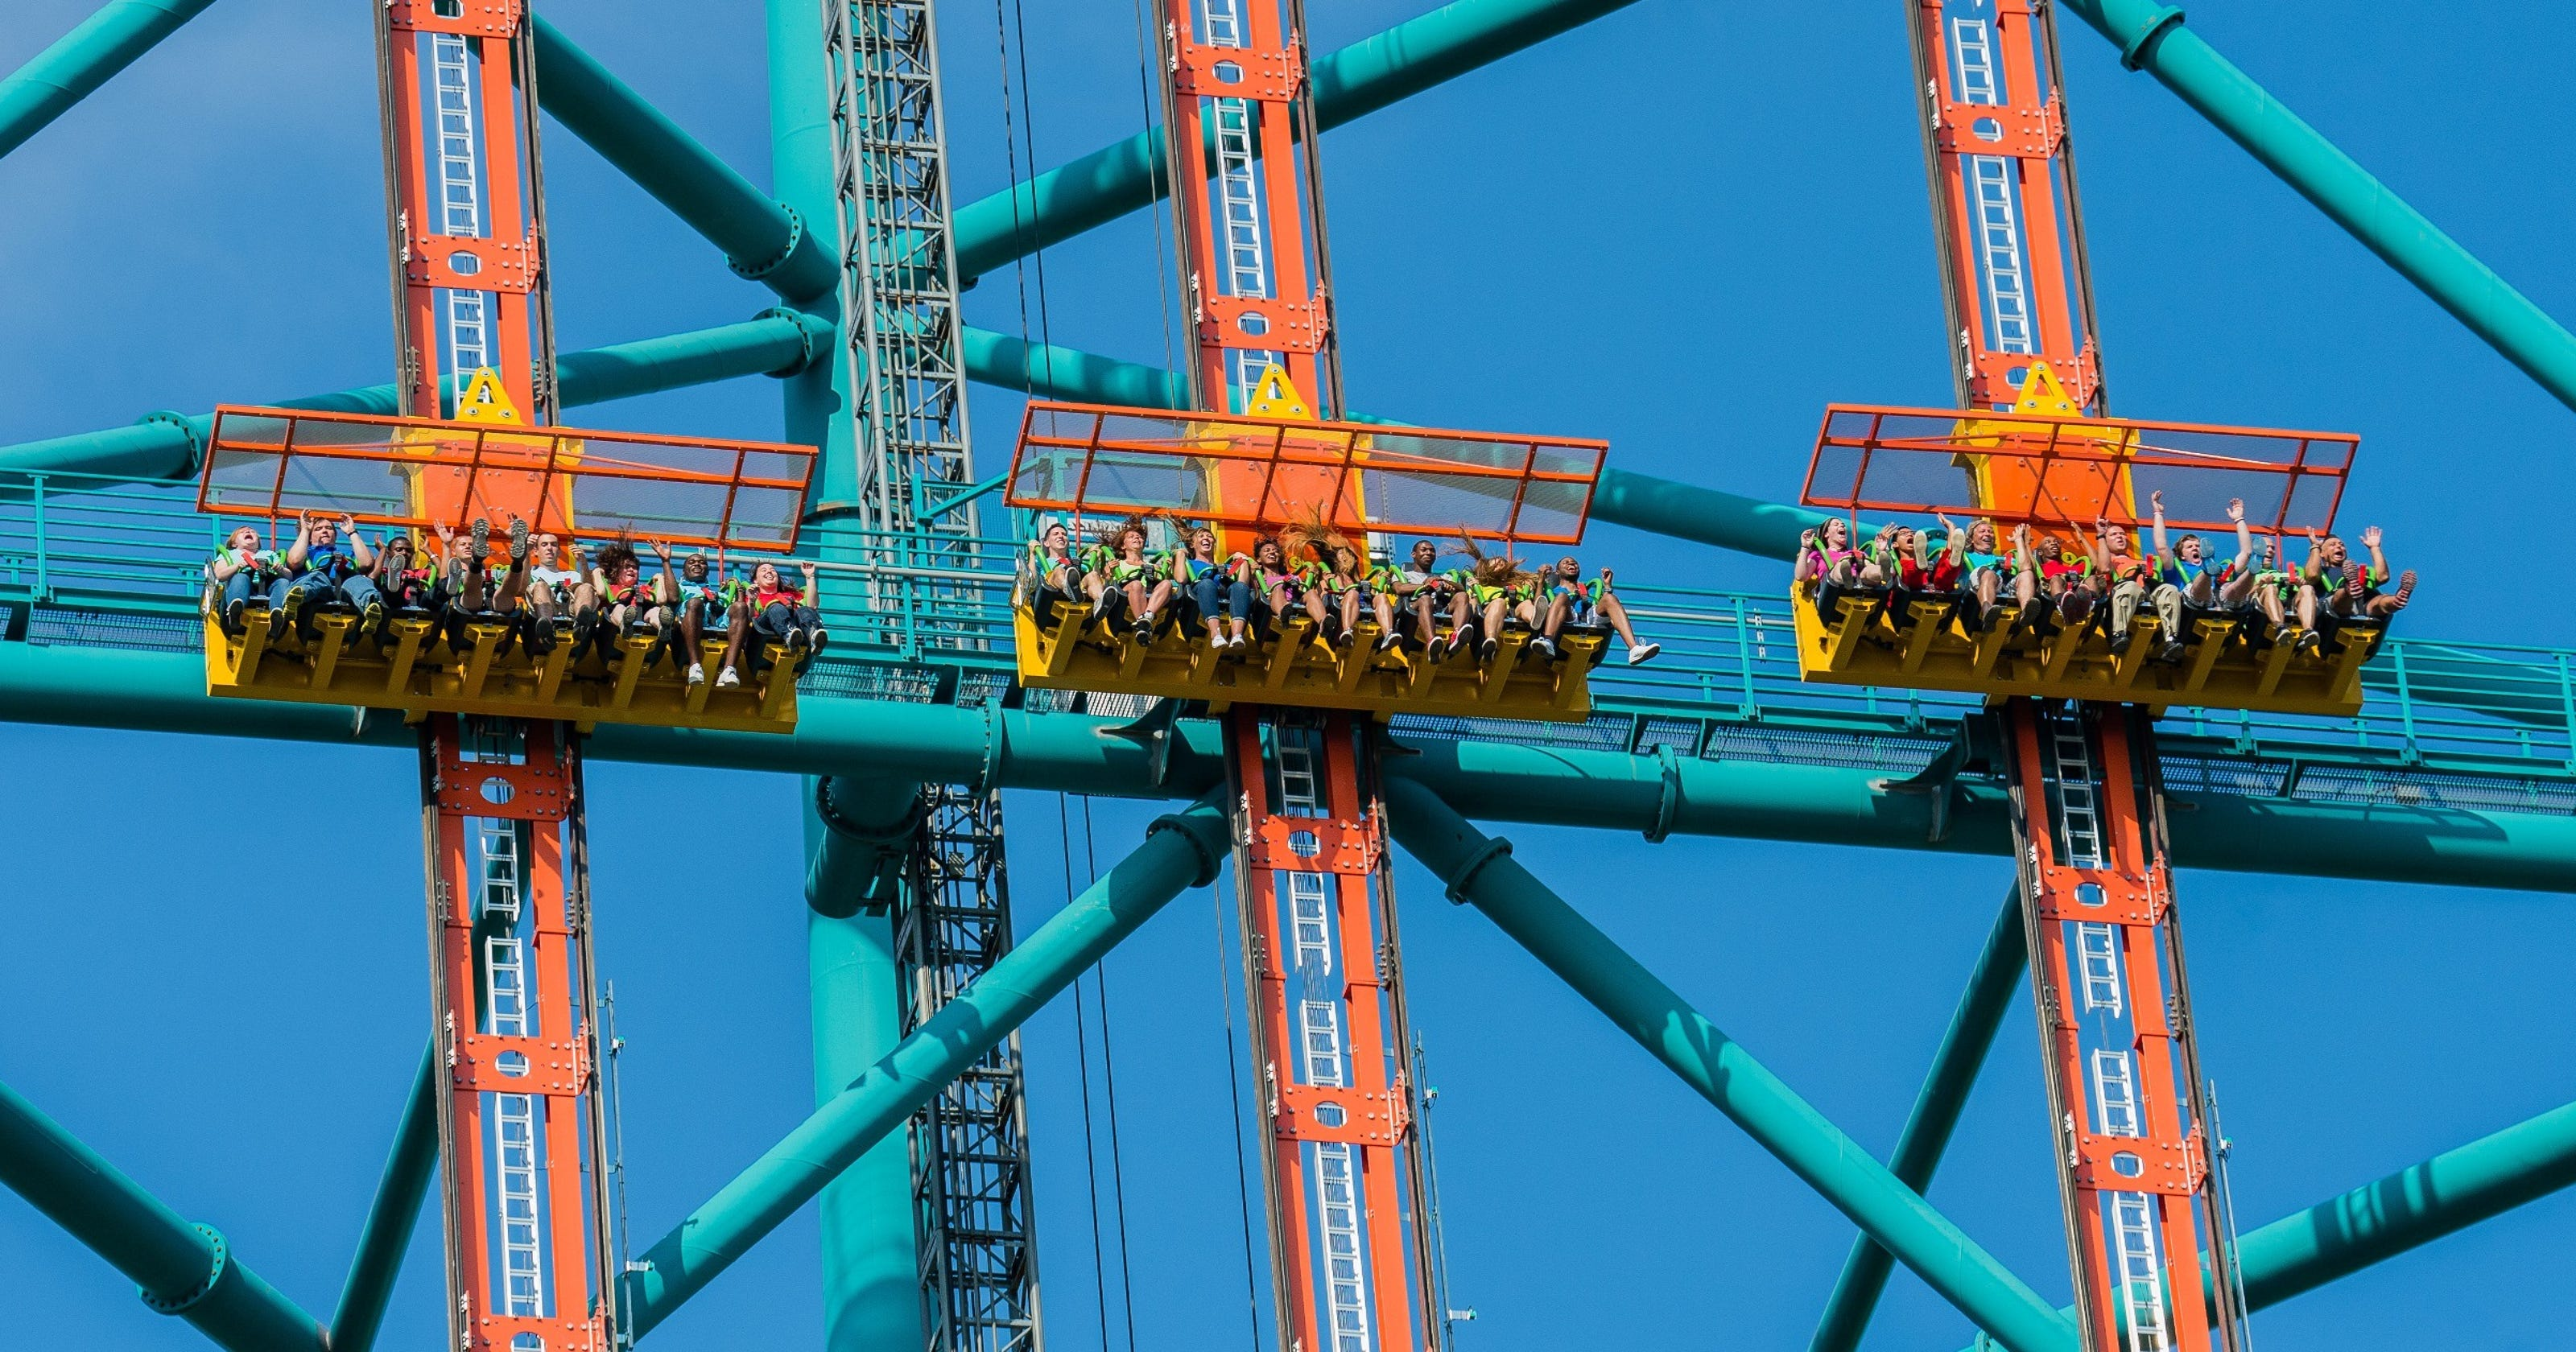 Zumanjaro: New Six Flags ride on hold